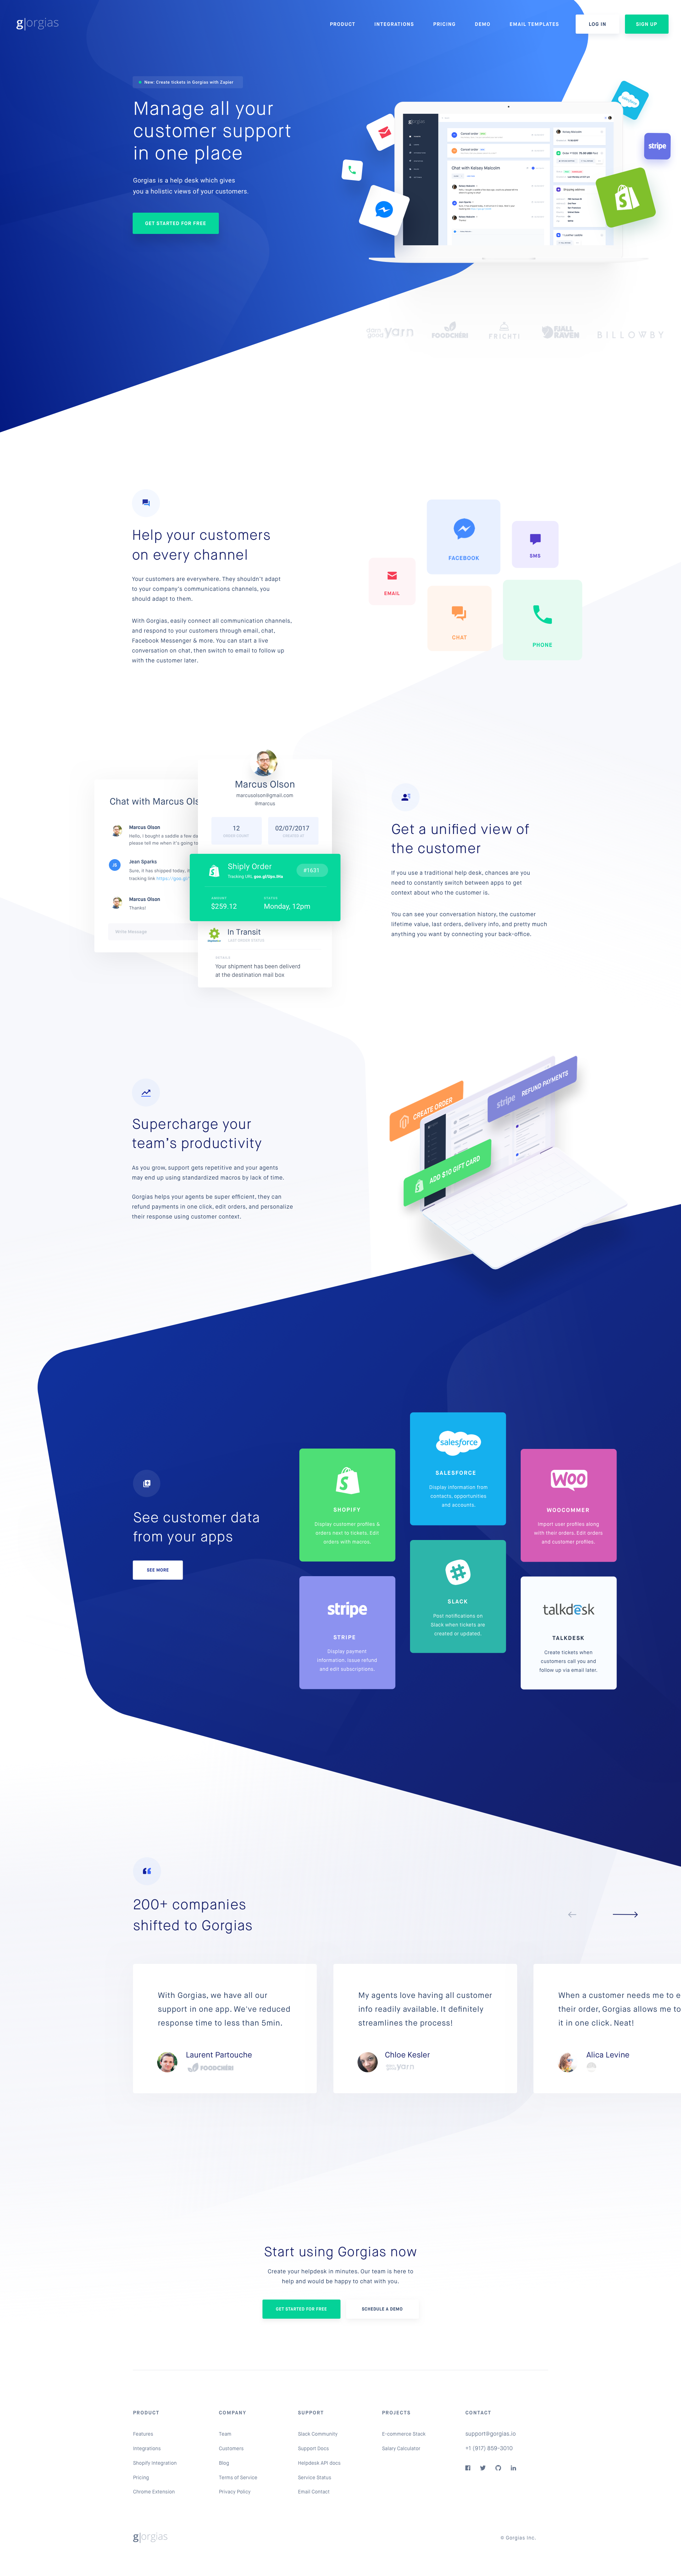 Click to see the full versions! | Gorgas – Home page | Inspire Design | | #ui #ux #userexperience #website #webdesign #design #minimal #minimalism #art